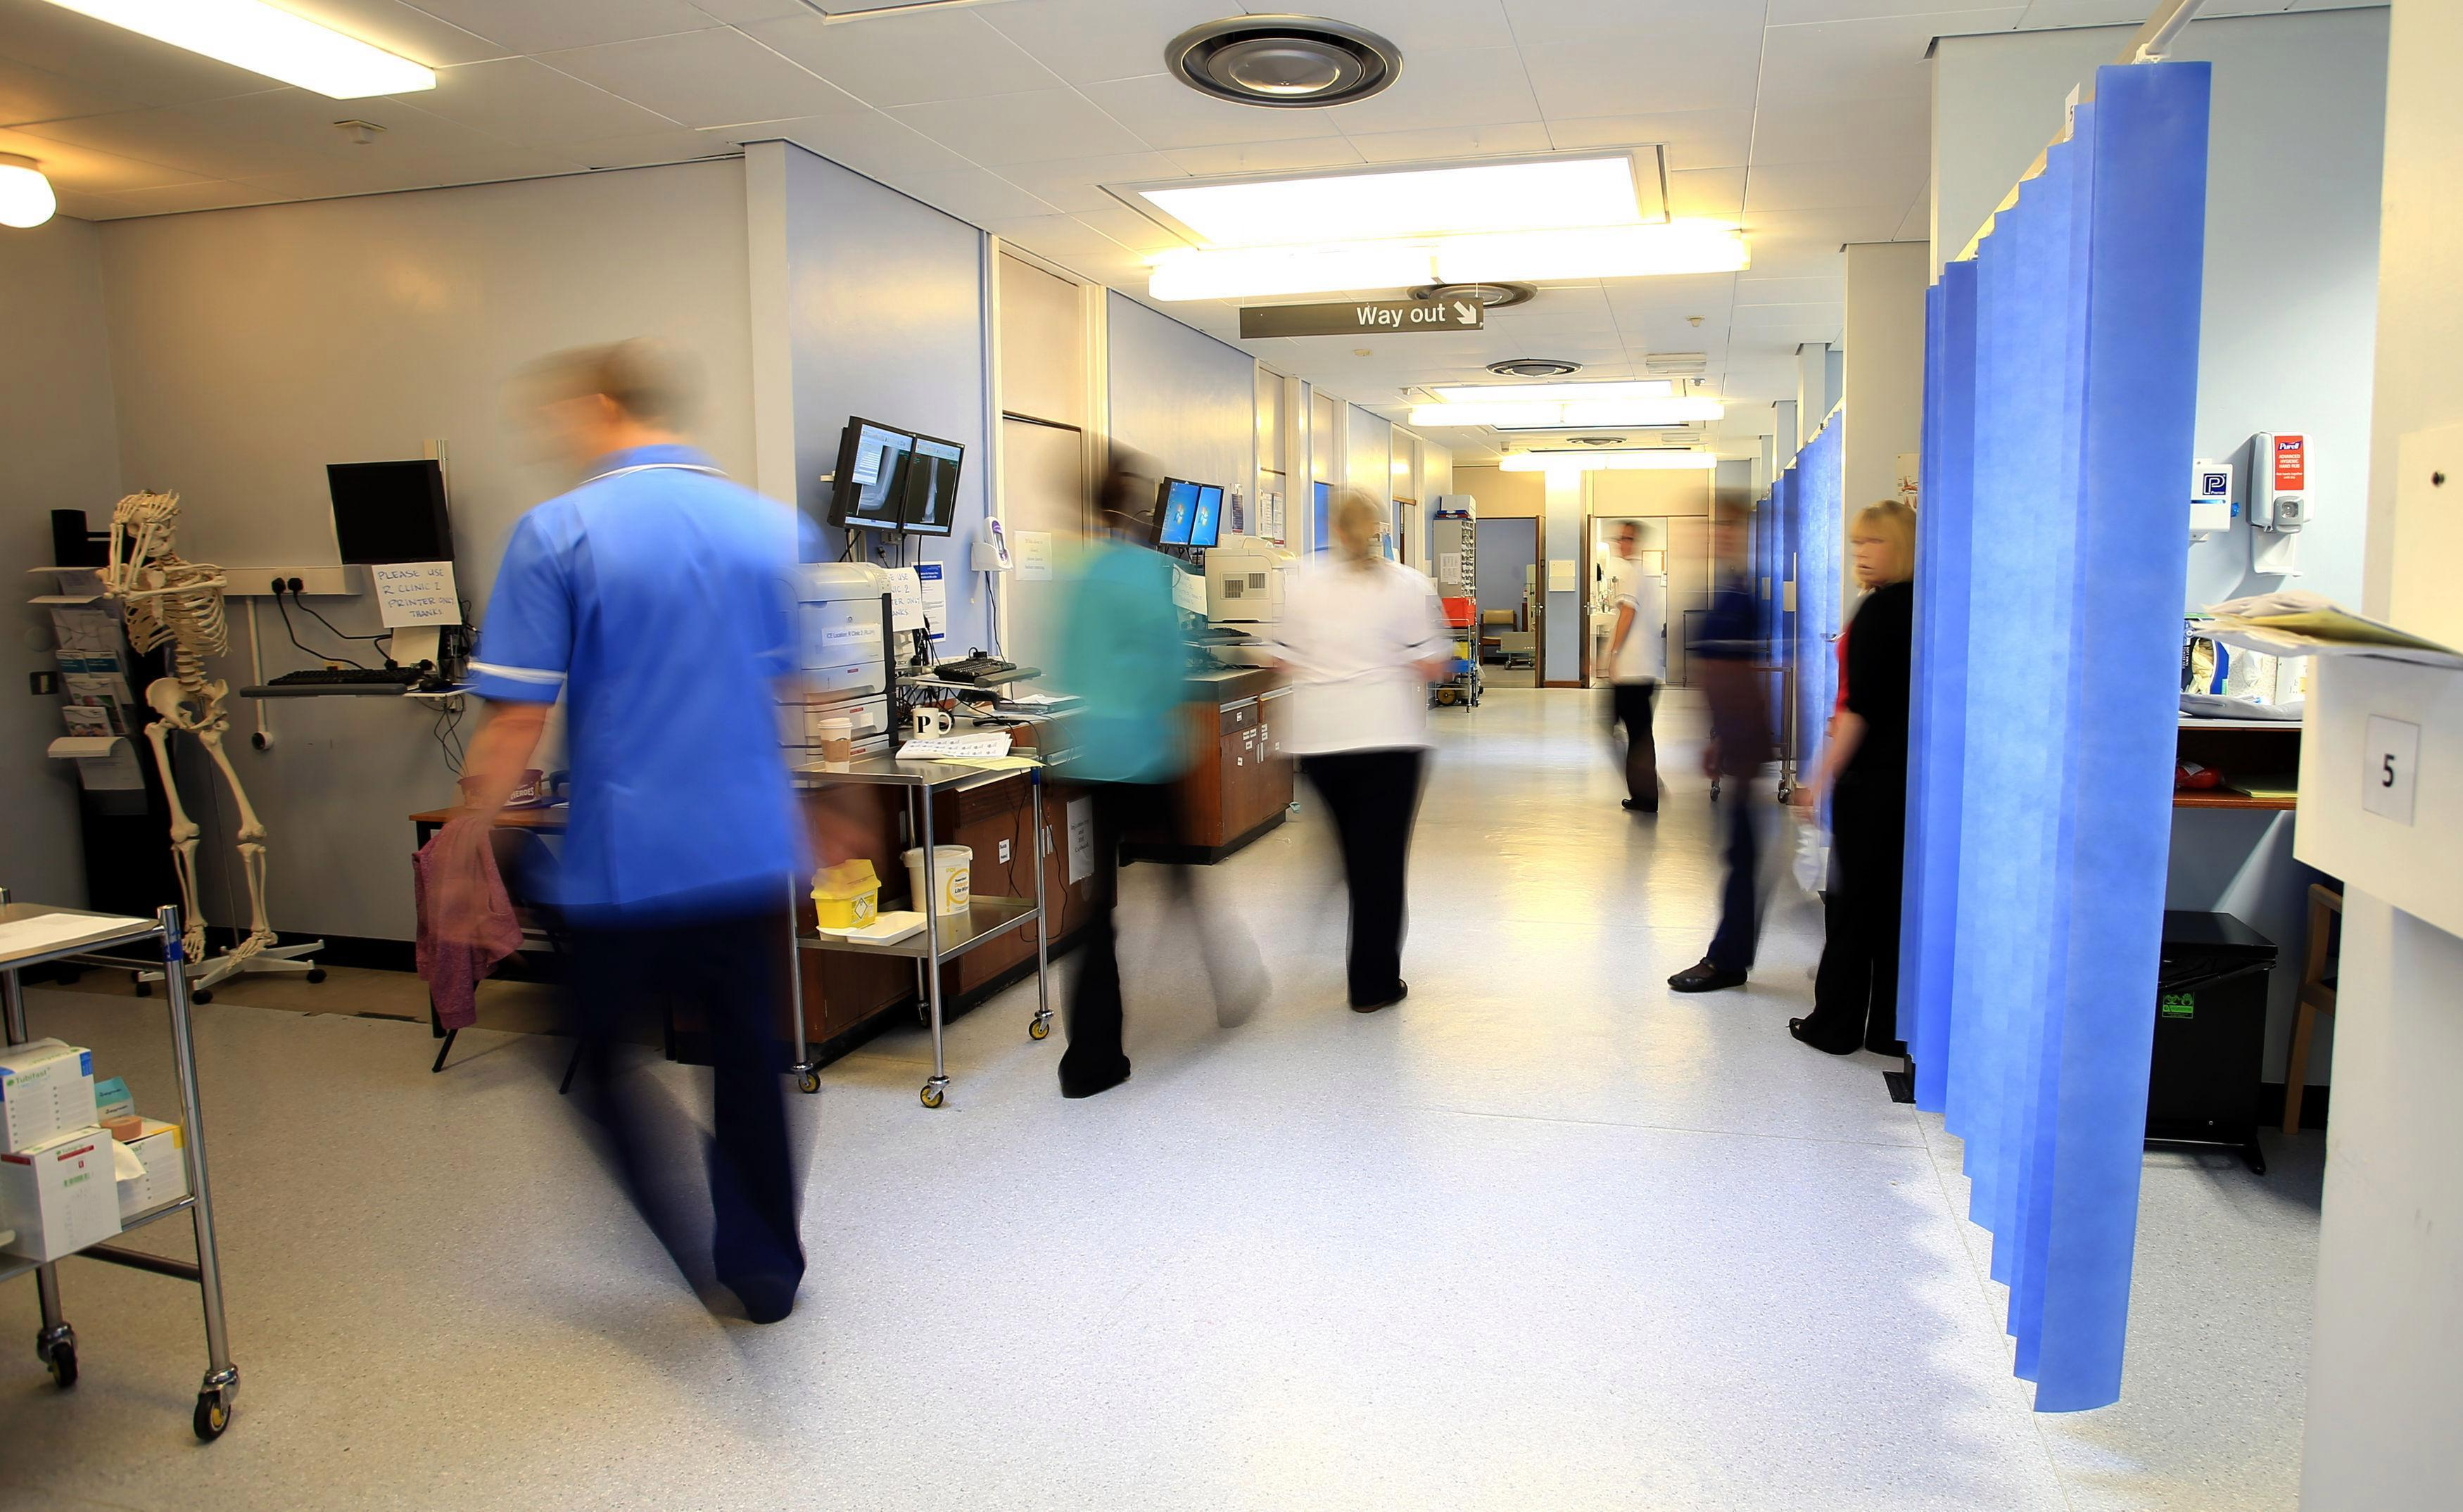 Top NHS doctors earn £14,000 more if they are men, figures show